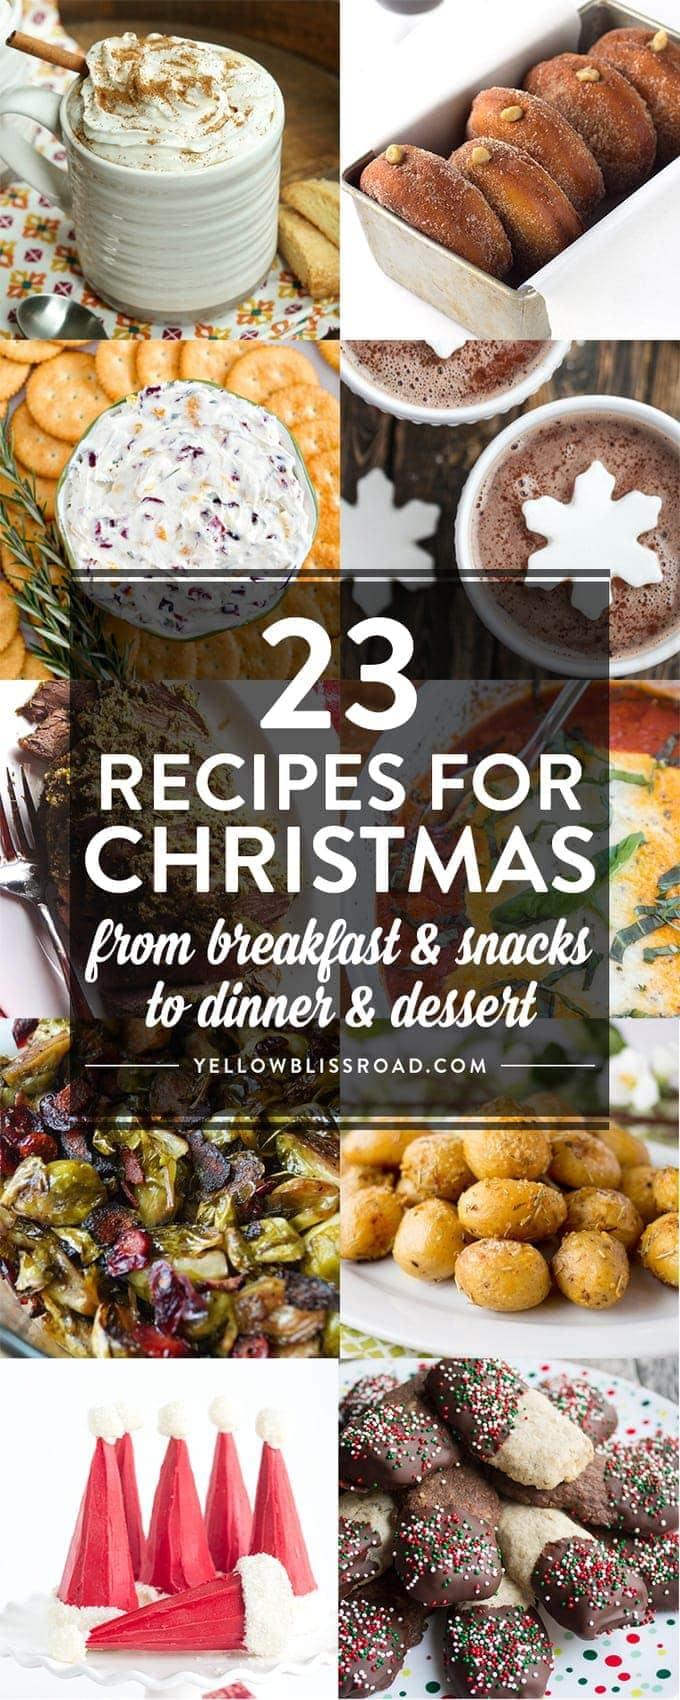 23-recipes-for-christmas